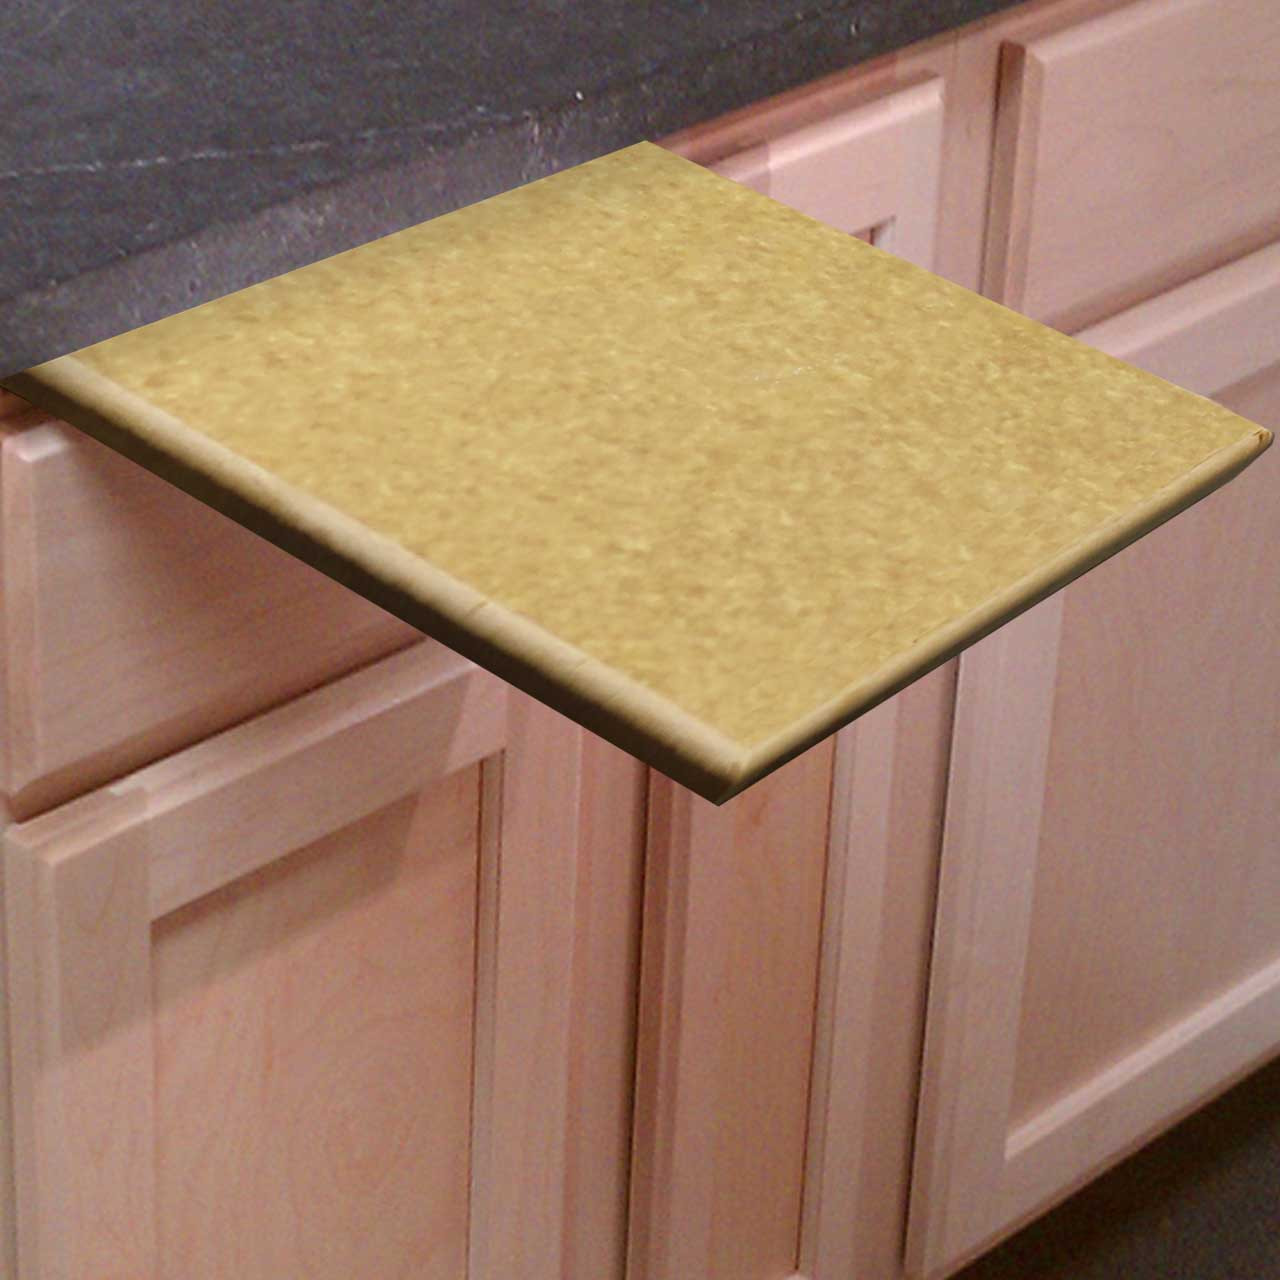 3/4 Inch Thick Richlite Pull Out Under Counter Cutting Board ...